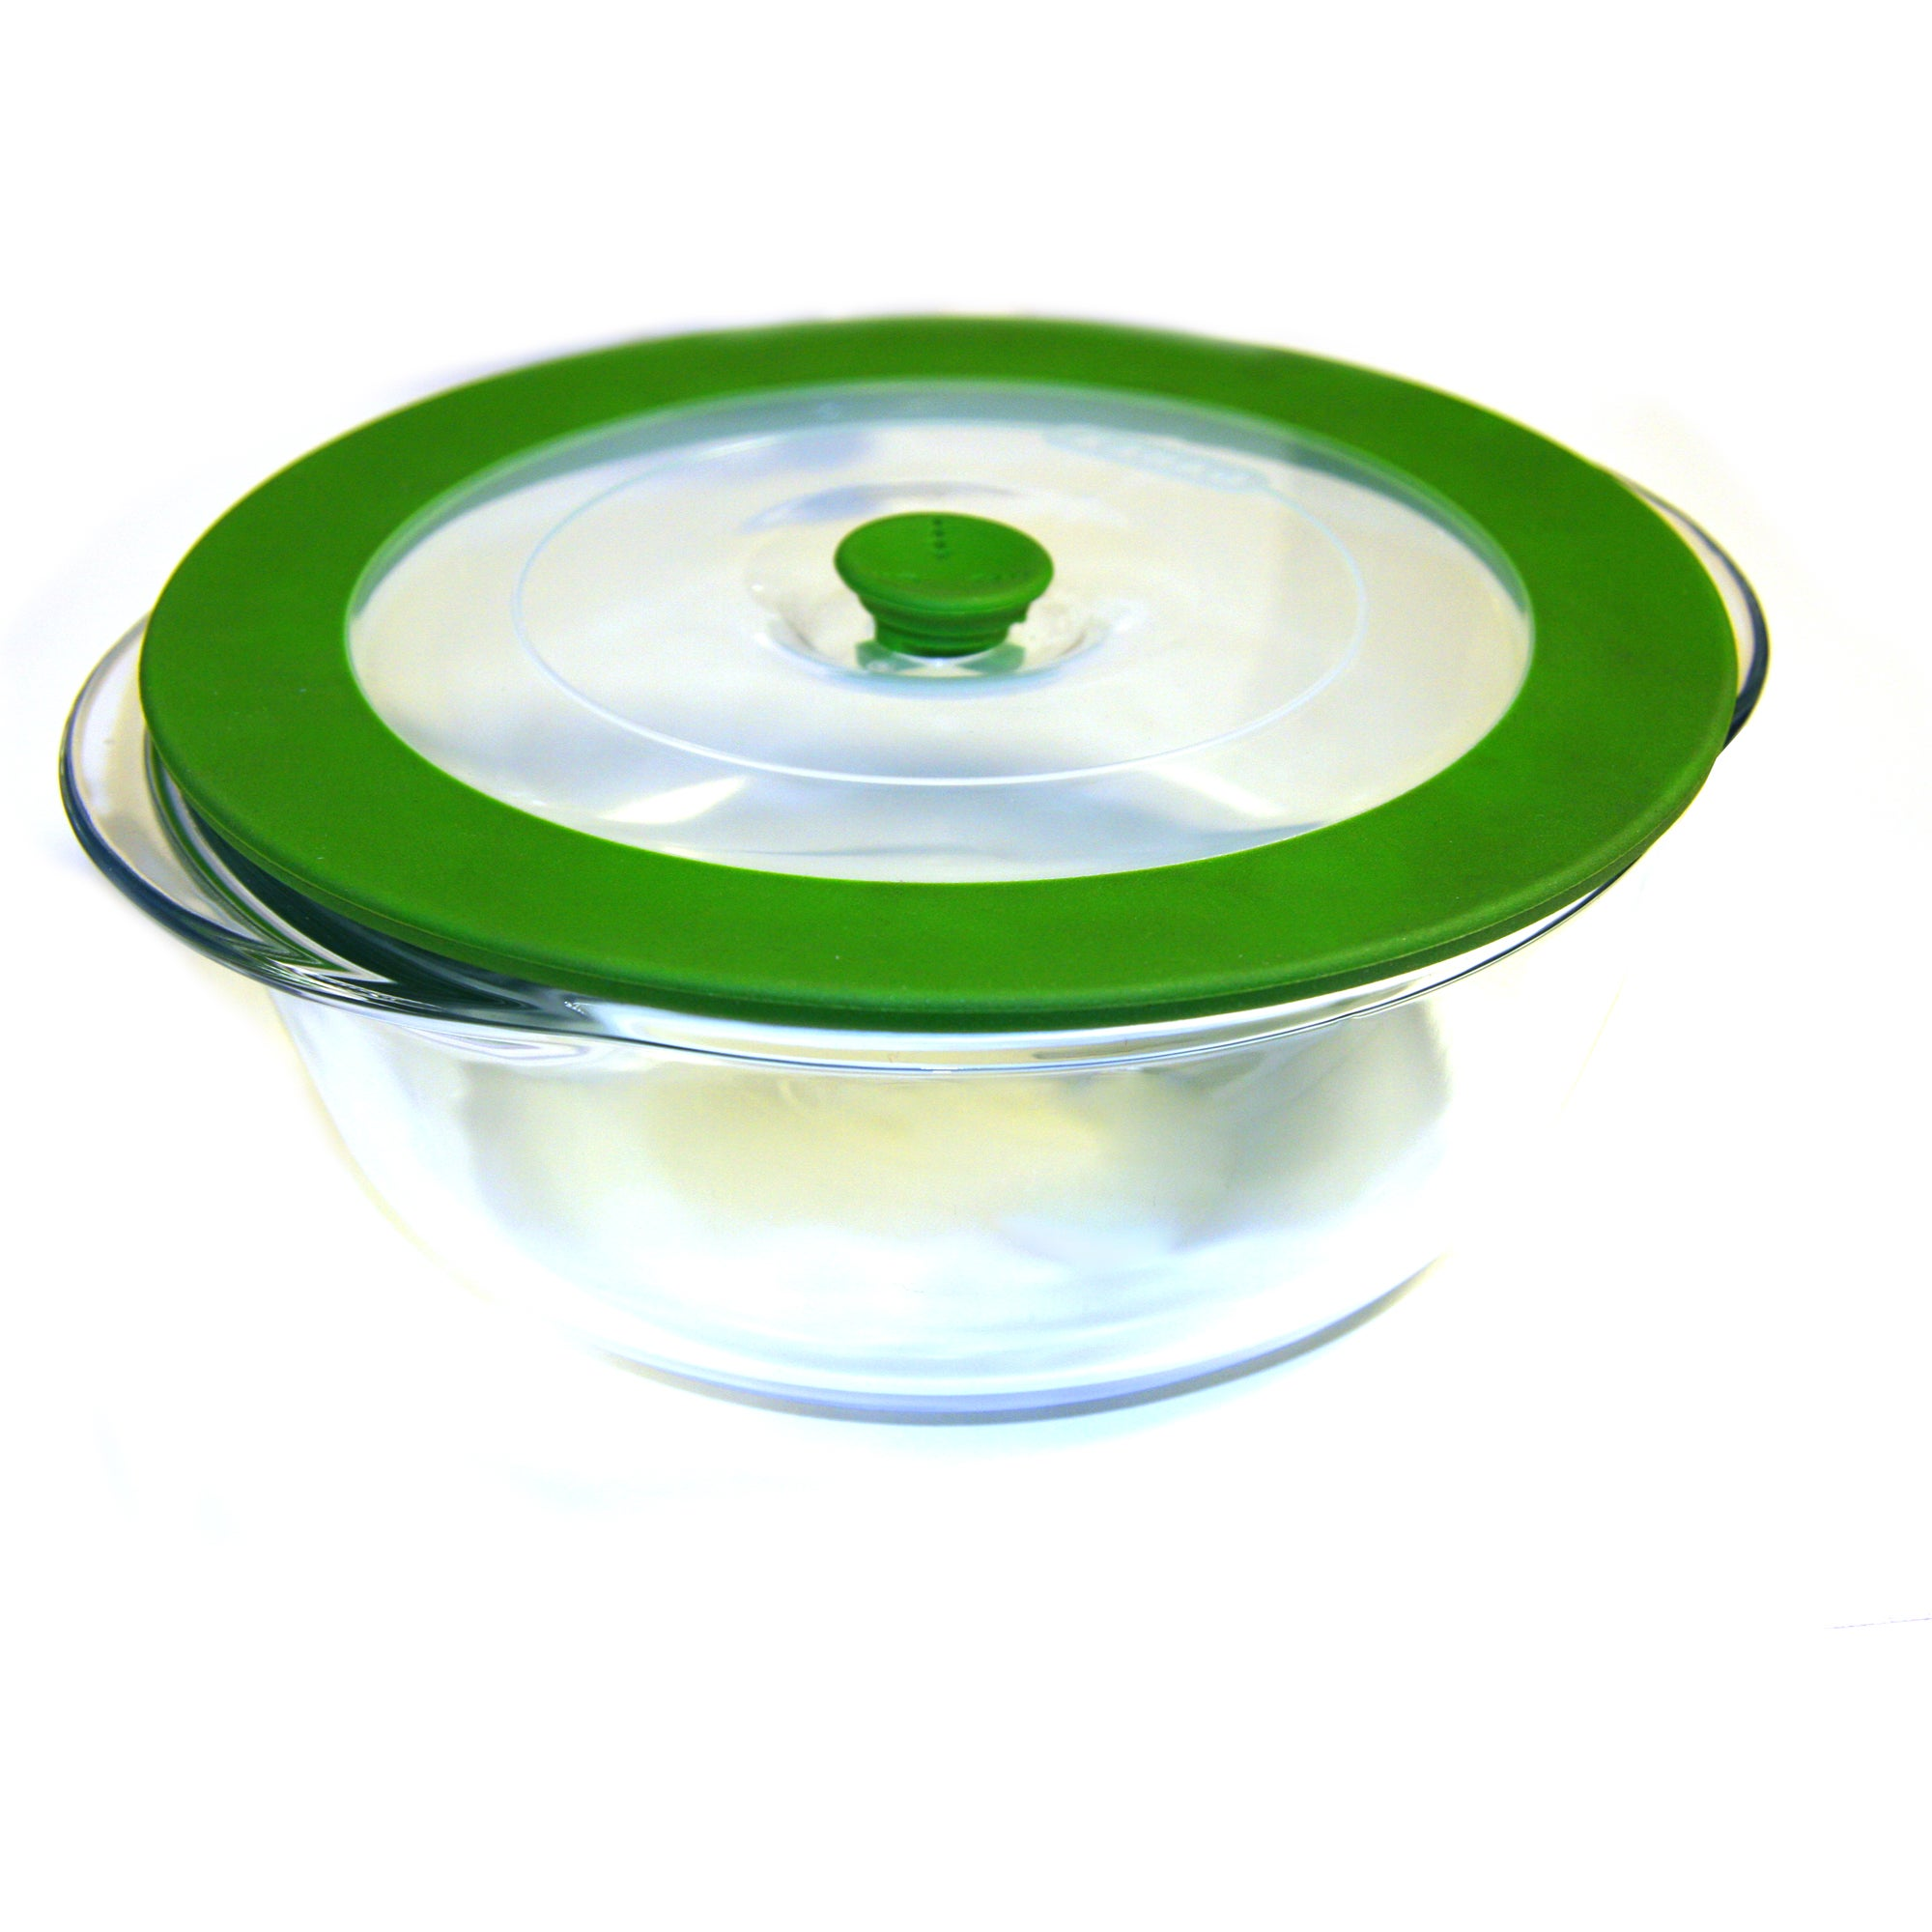 Pyrex 4 in 1 Round Dish